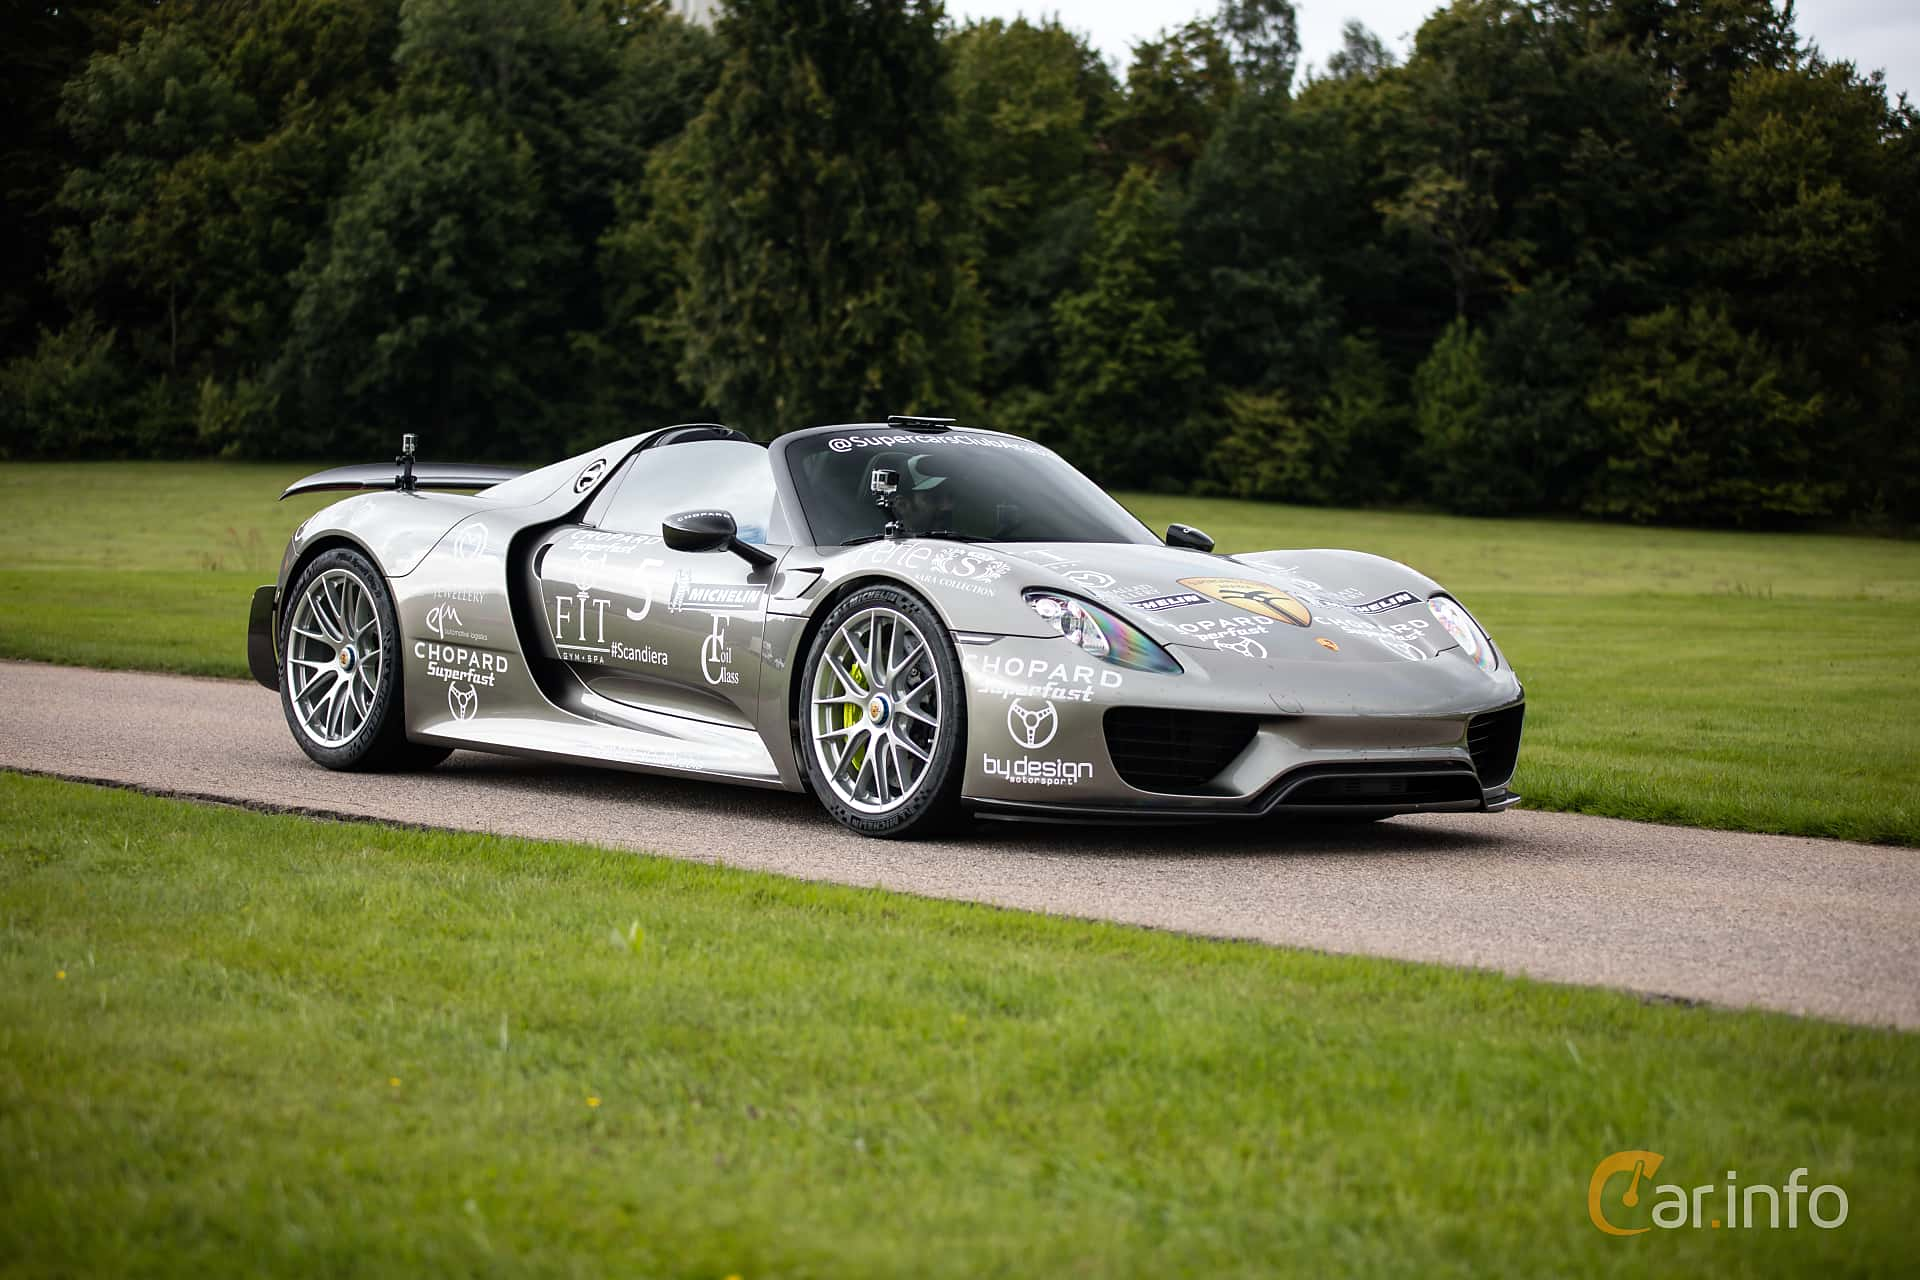 user images of porsche 918 spyder 1st generation. Black Bedroom Furniture Sets. Home Design Ideas